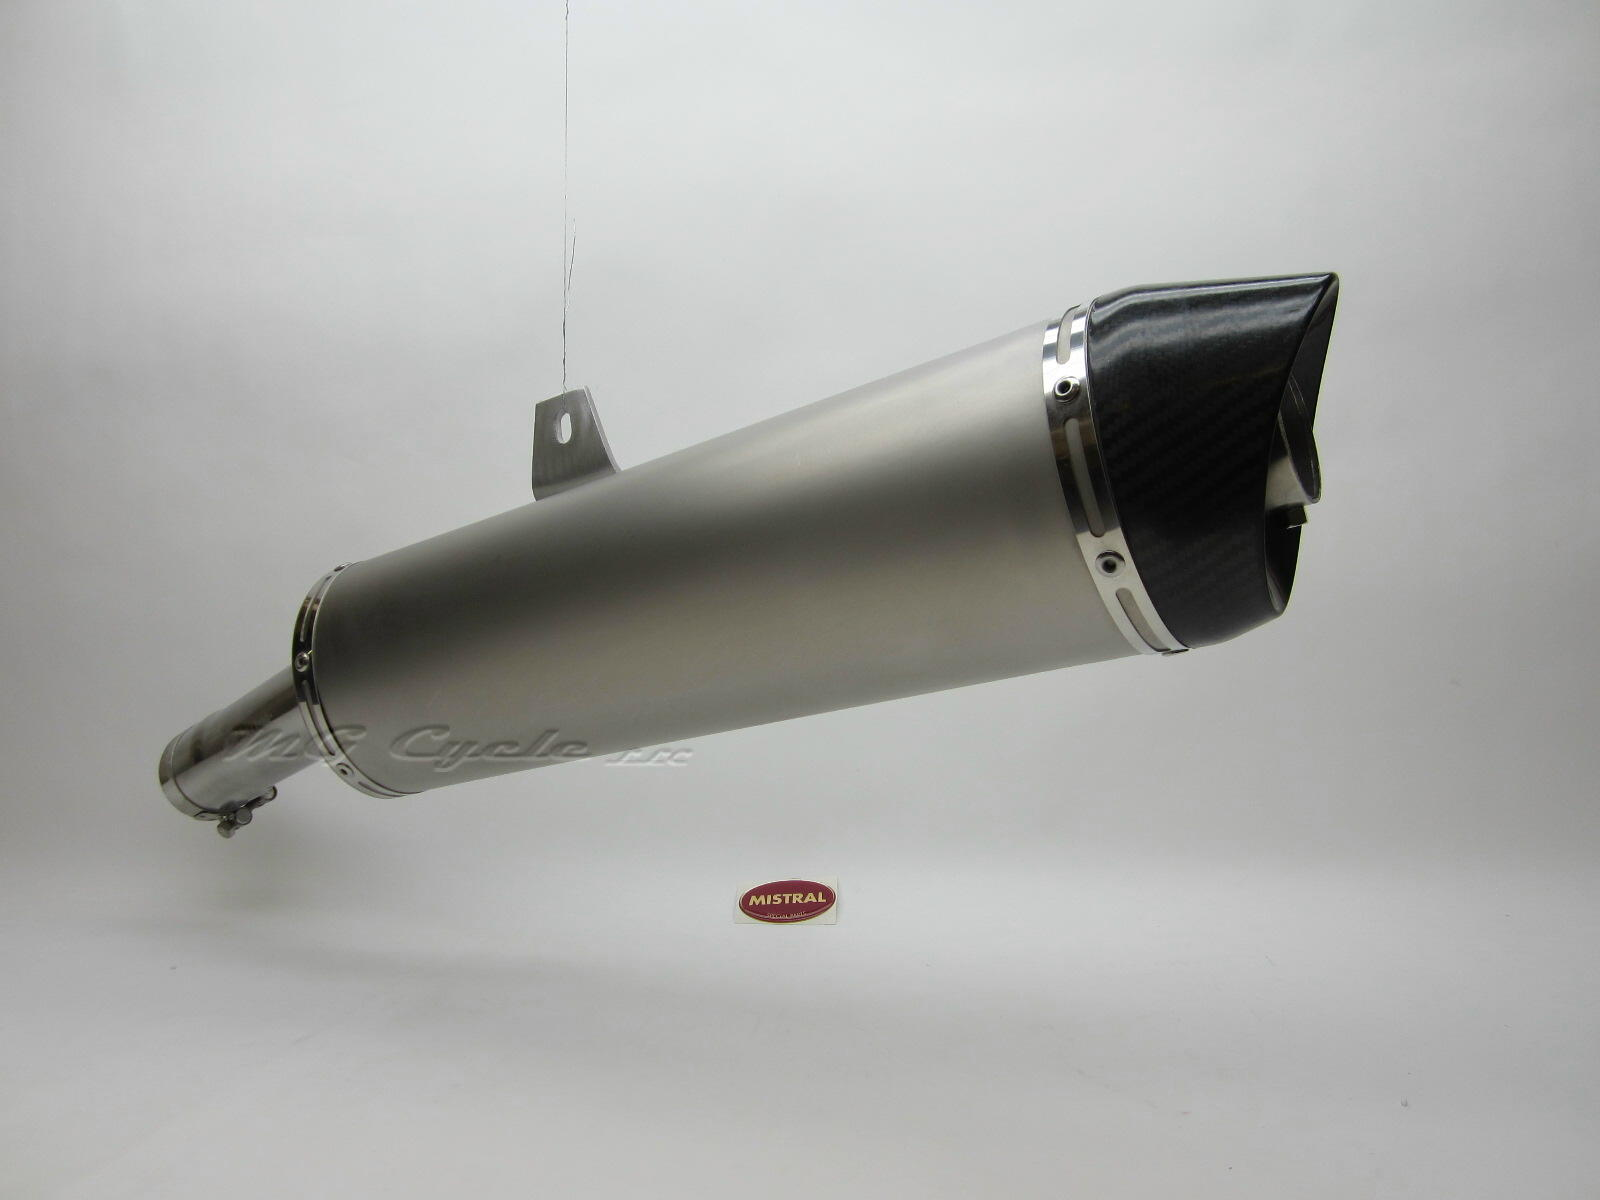 Mistral muffler, titanium oval w carbon fiber end cap, for Griso